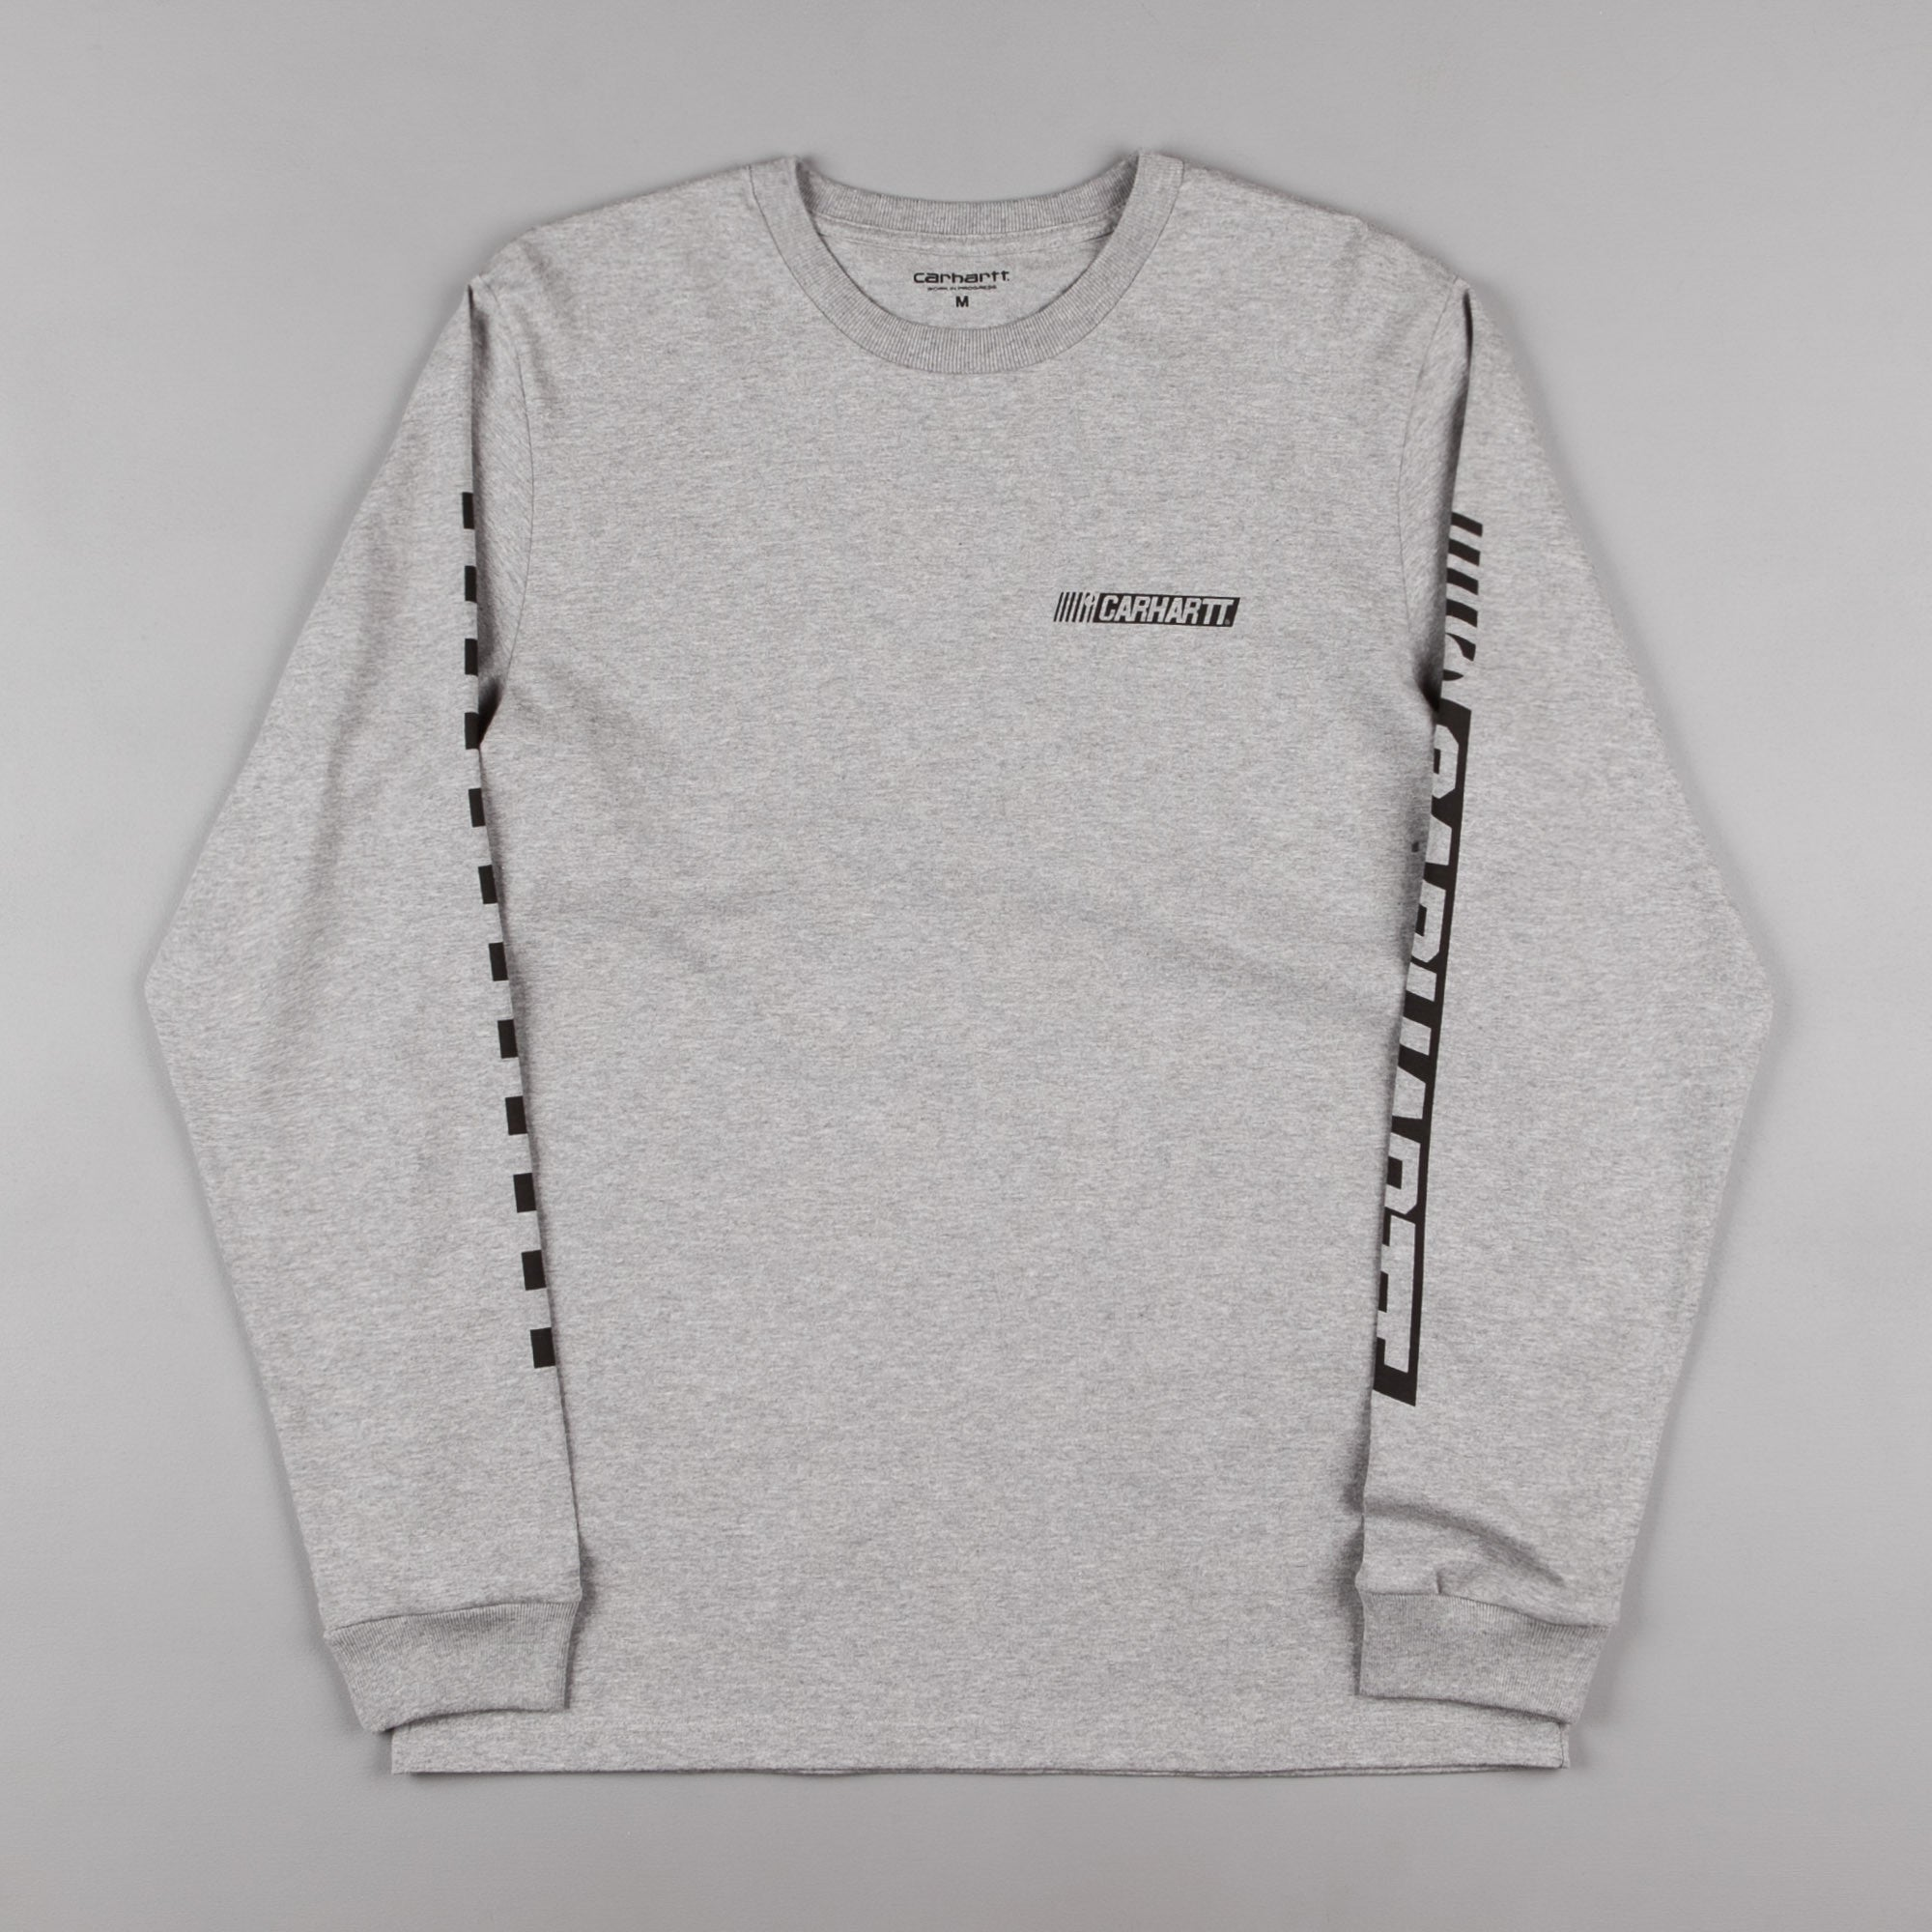 Carhartt Cart Long Sleeve T-Shirt - Grey Heather / Black